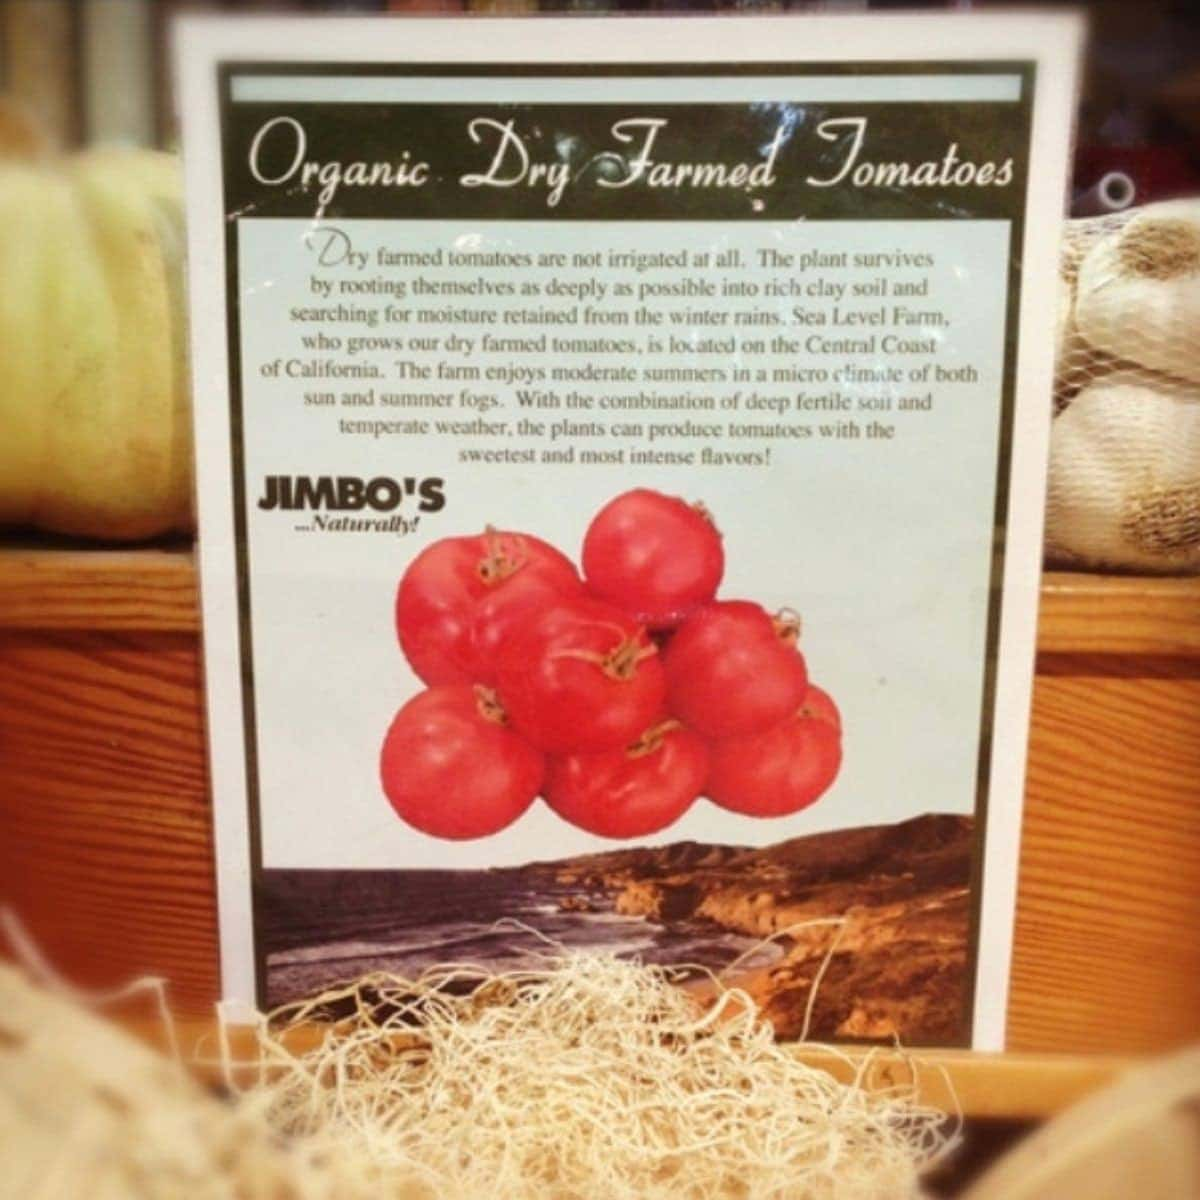 Photograph of dry farmed tomatoes in Jimbo's grocery store.